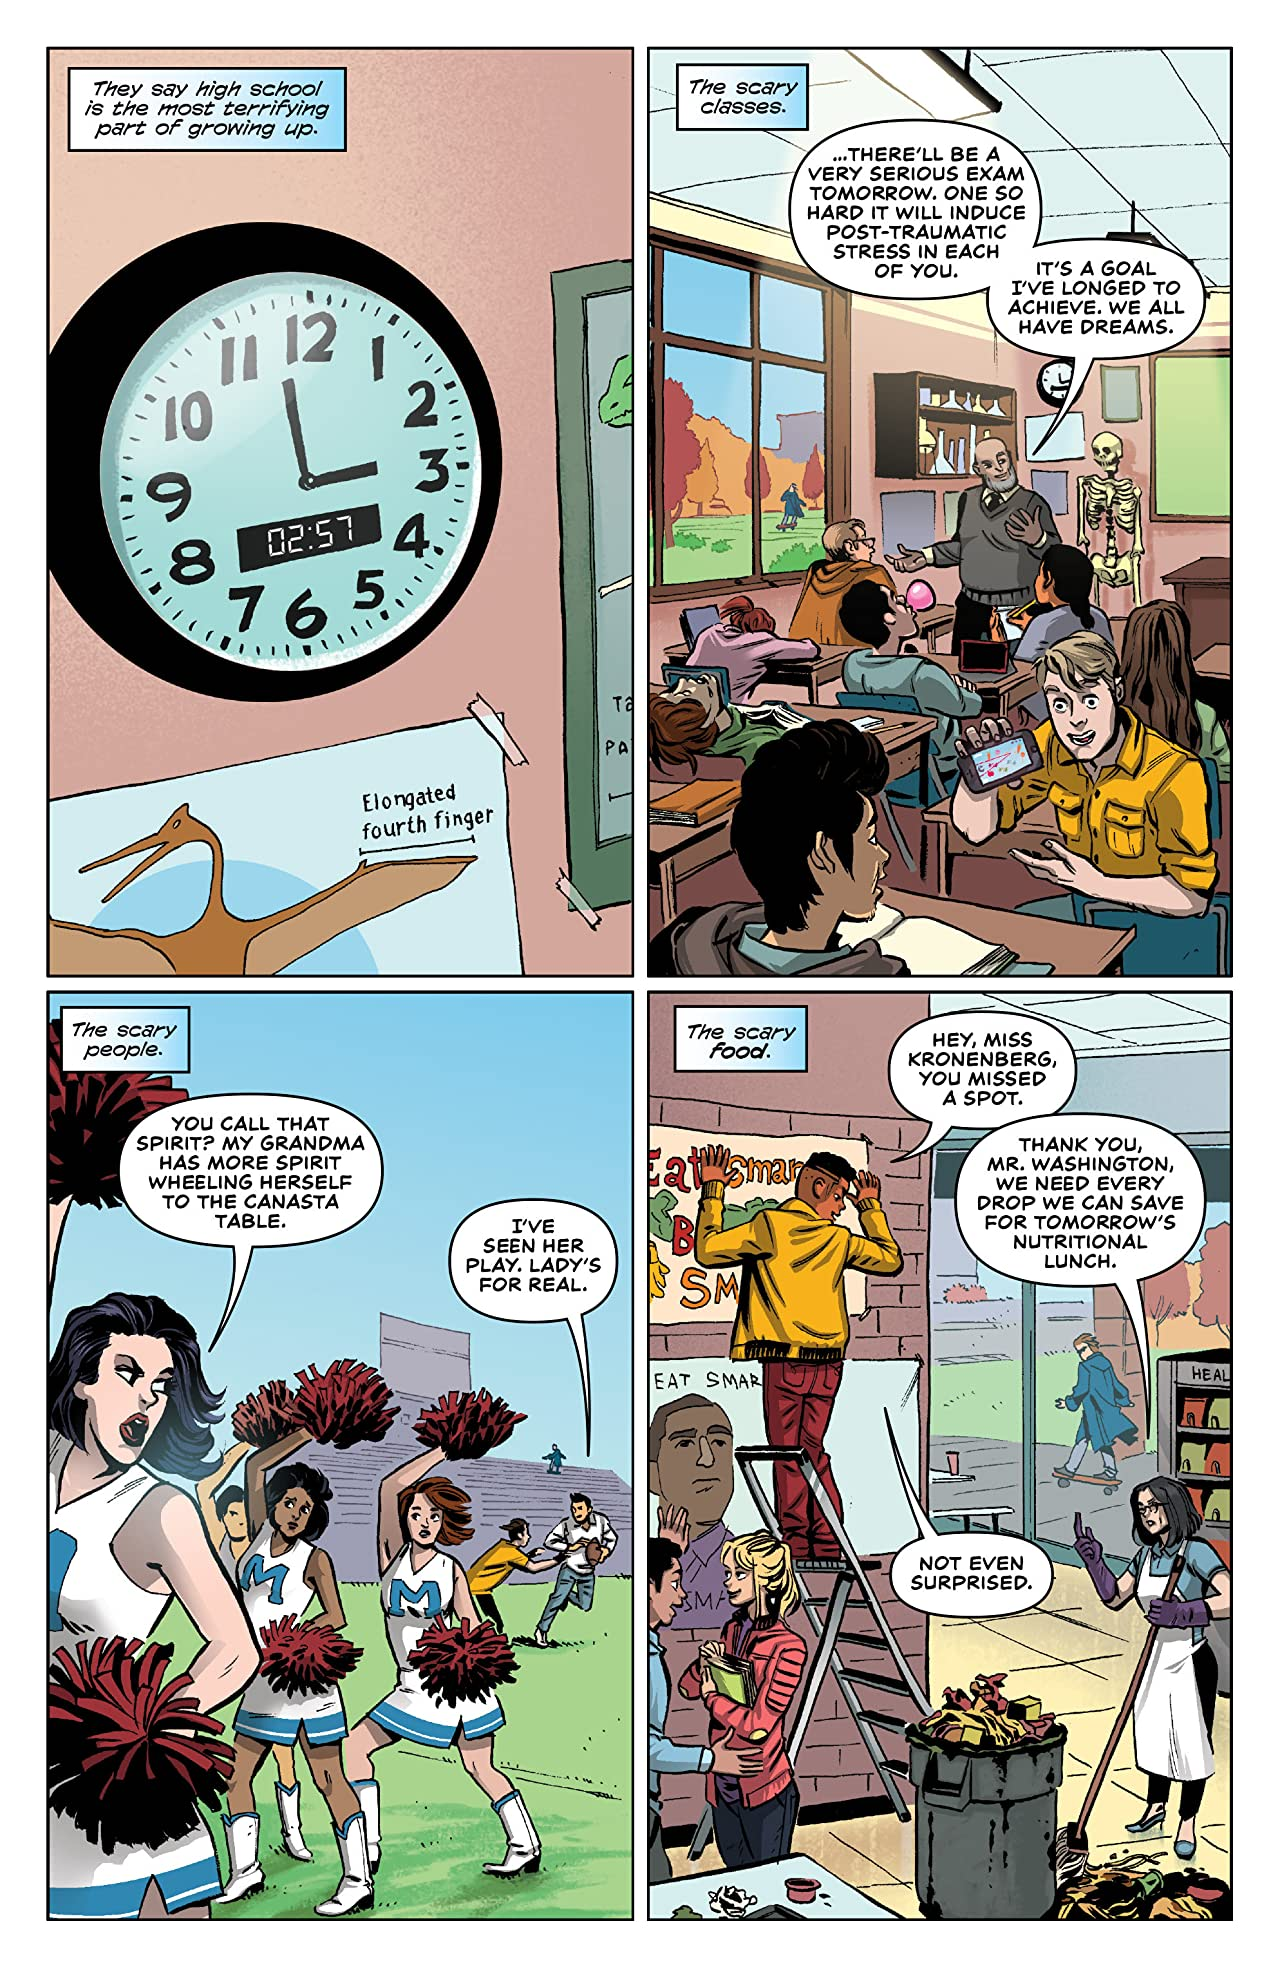 3 O'Clock Club Vol. 1: School's Out . . . of Control!